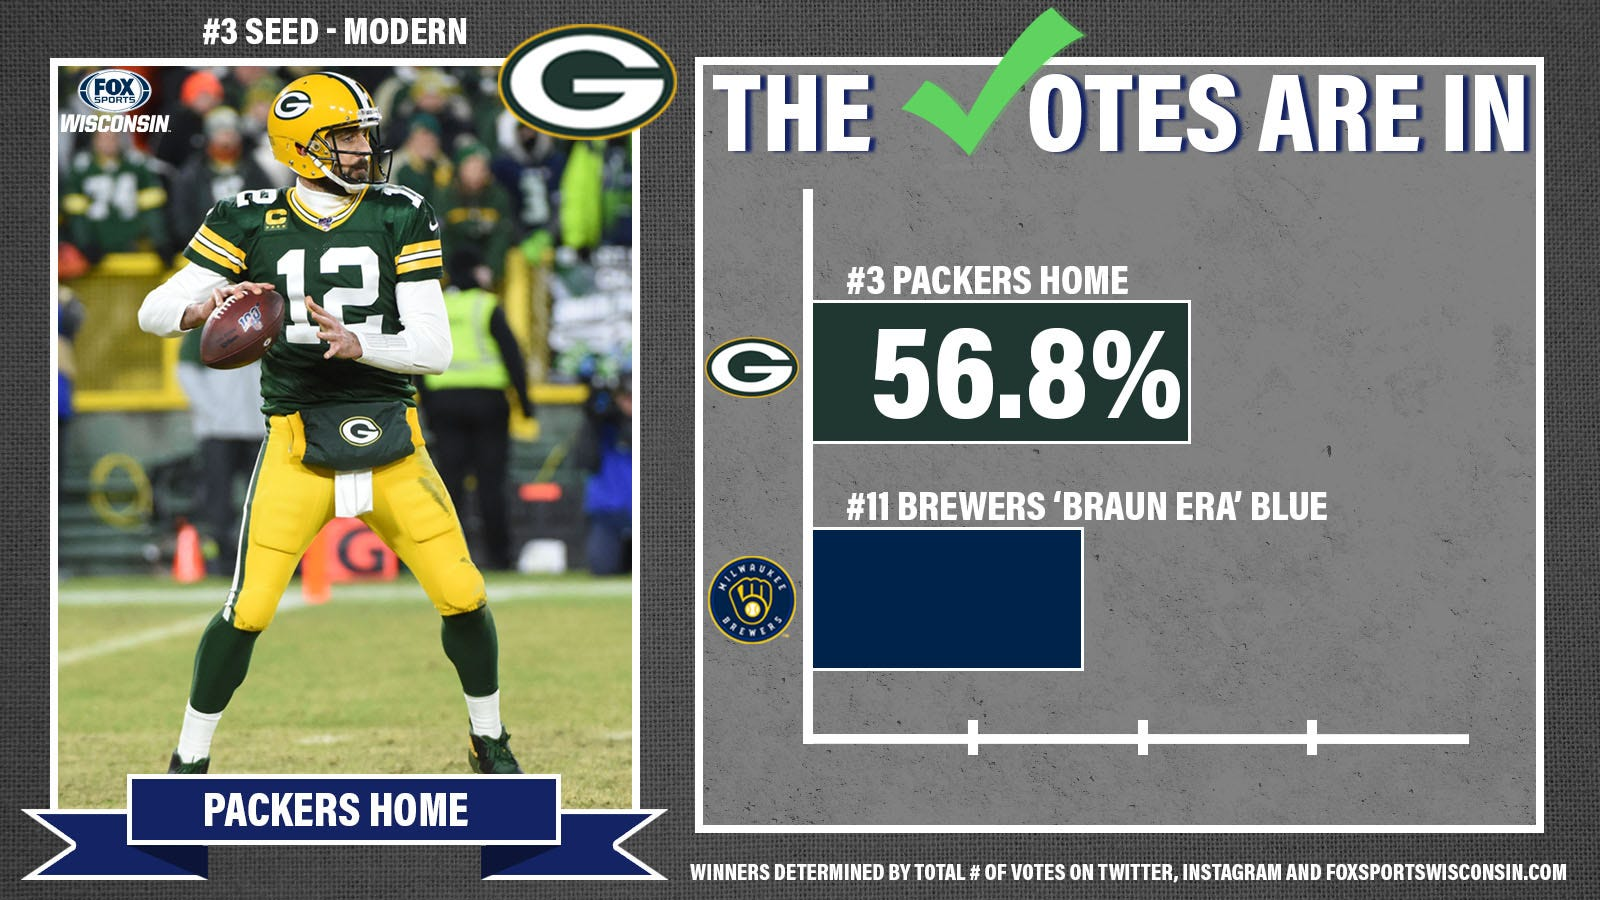 MODERN 3 vs. 11 packers home